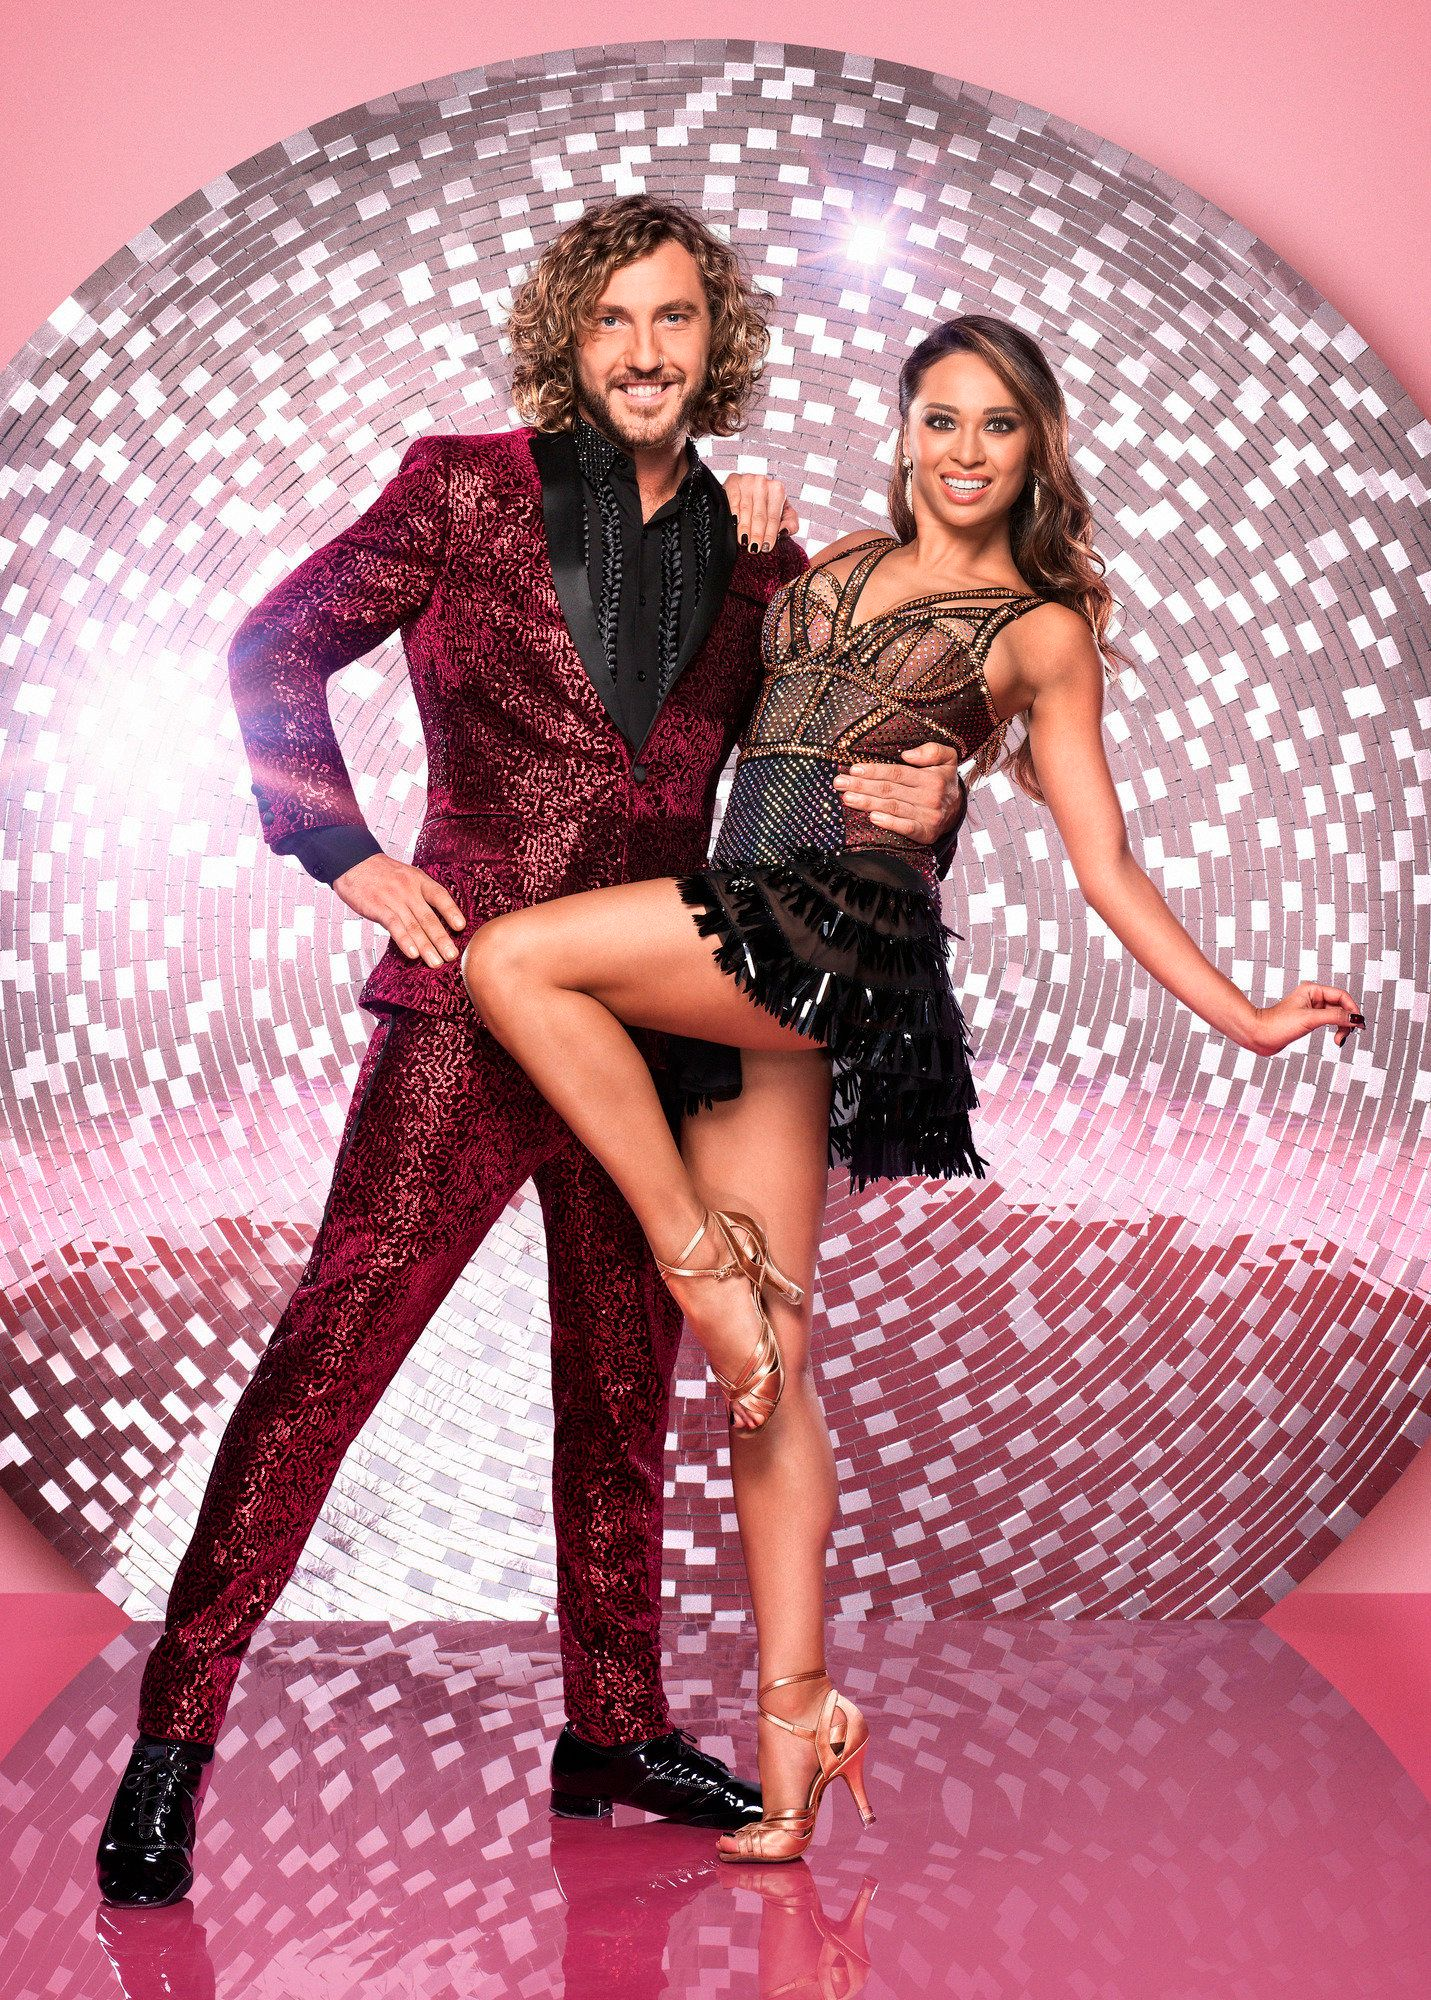 Will Seann Walsh and Katya Jones quit